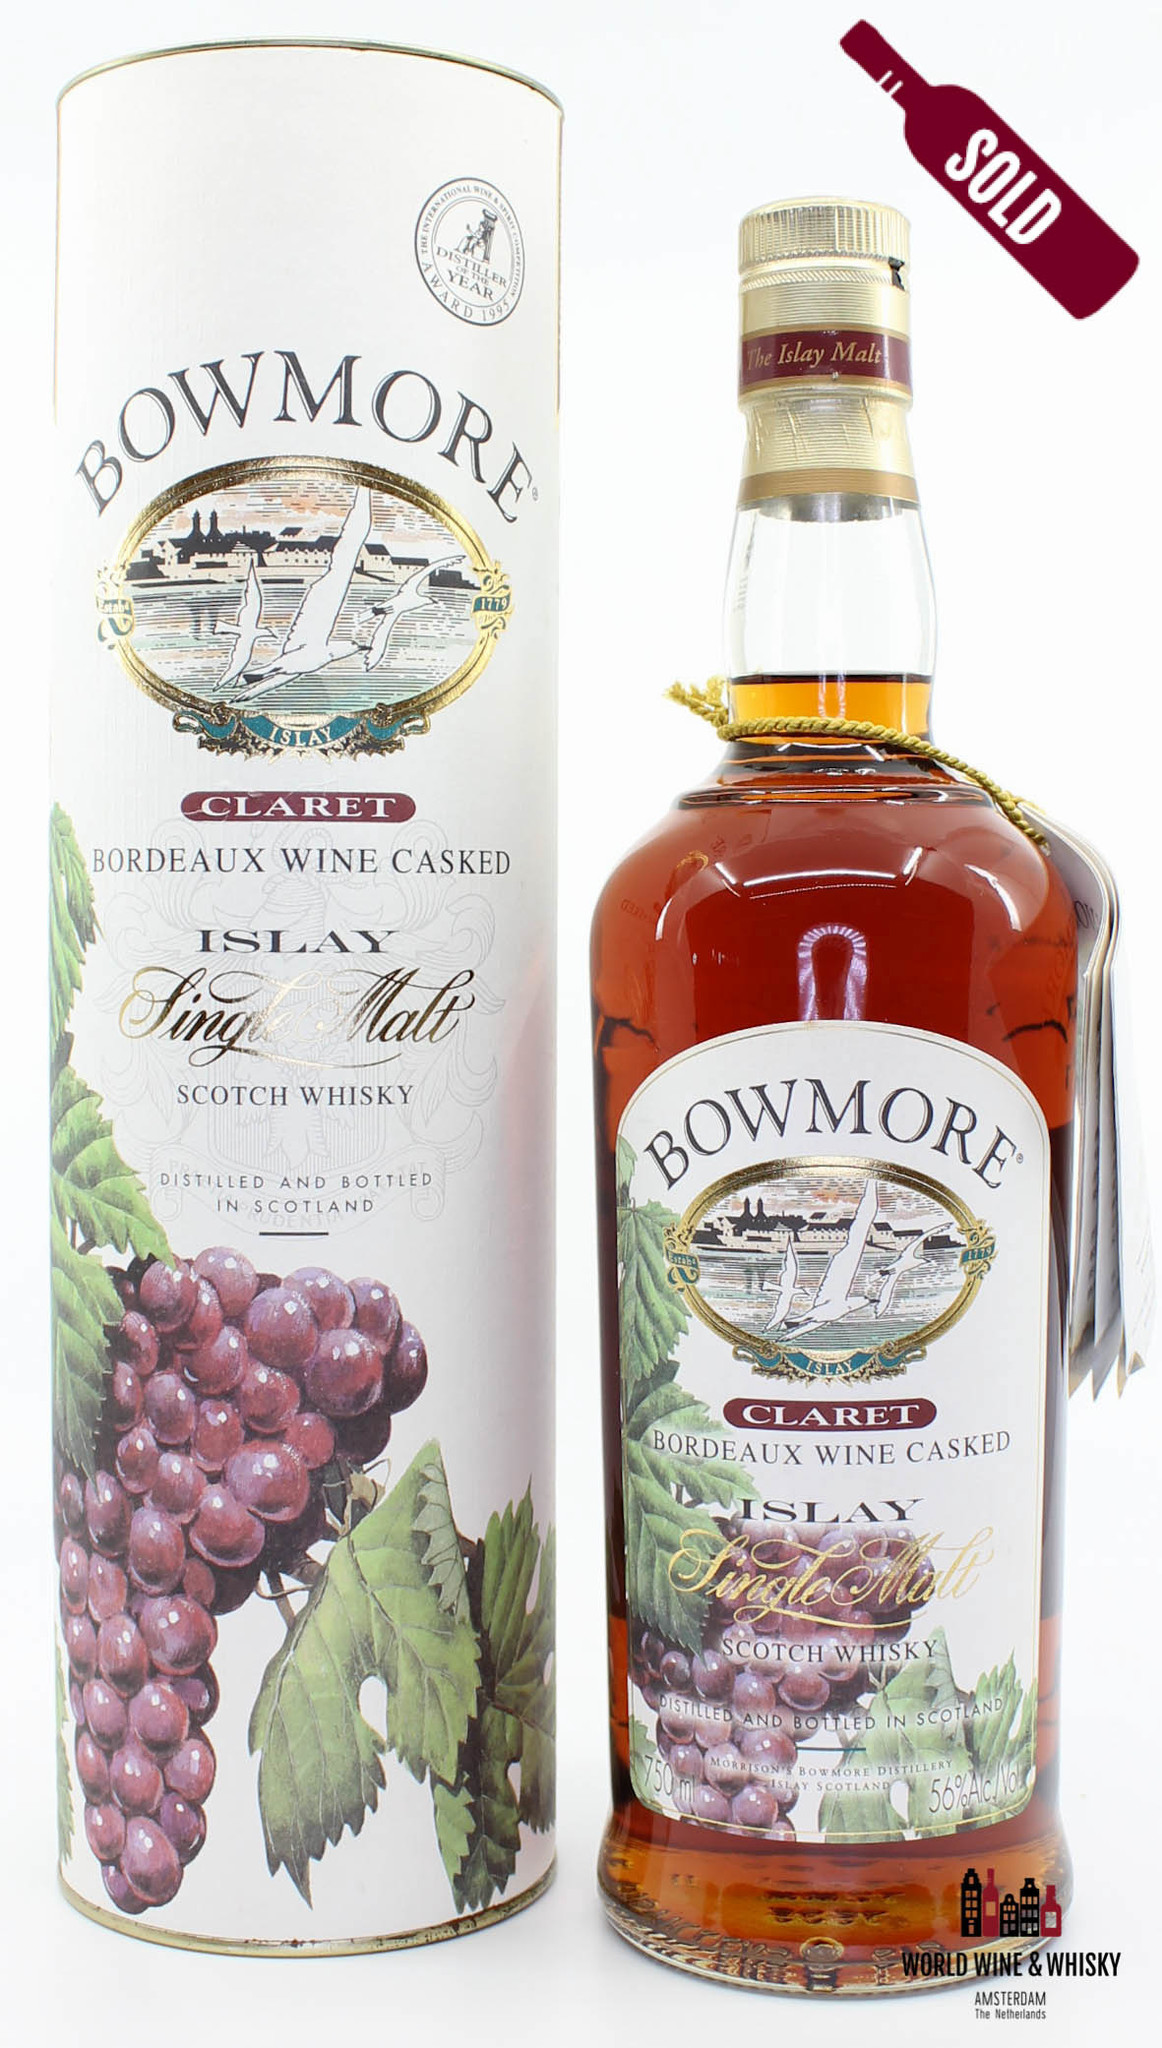 Bowmore Bowmore 1999 Claret - Bordeaux Wine Casked 56% (750ml)